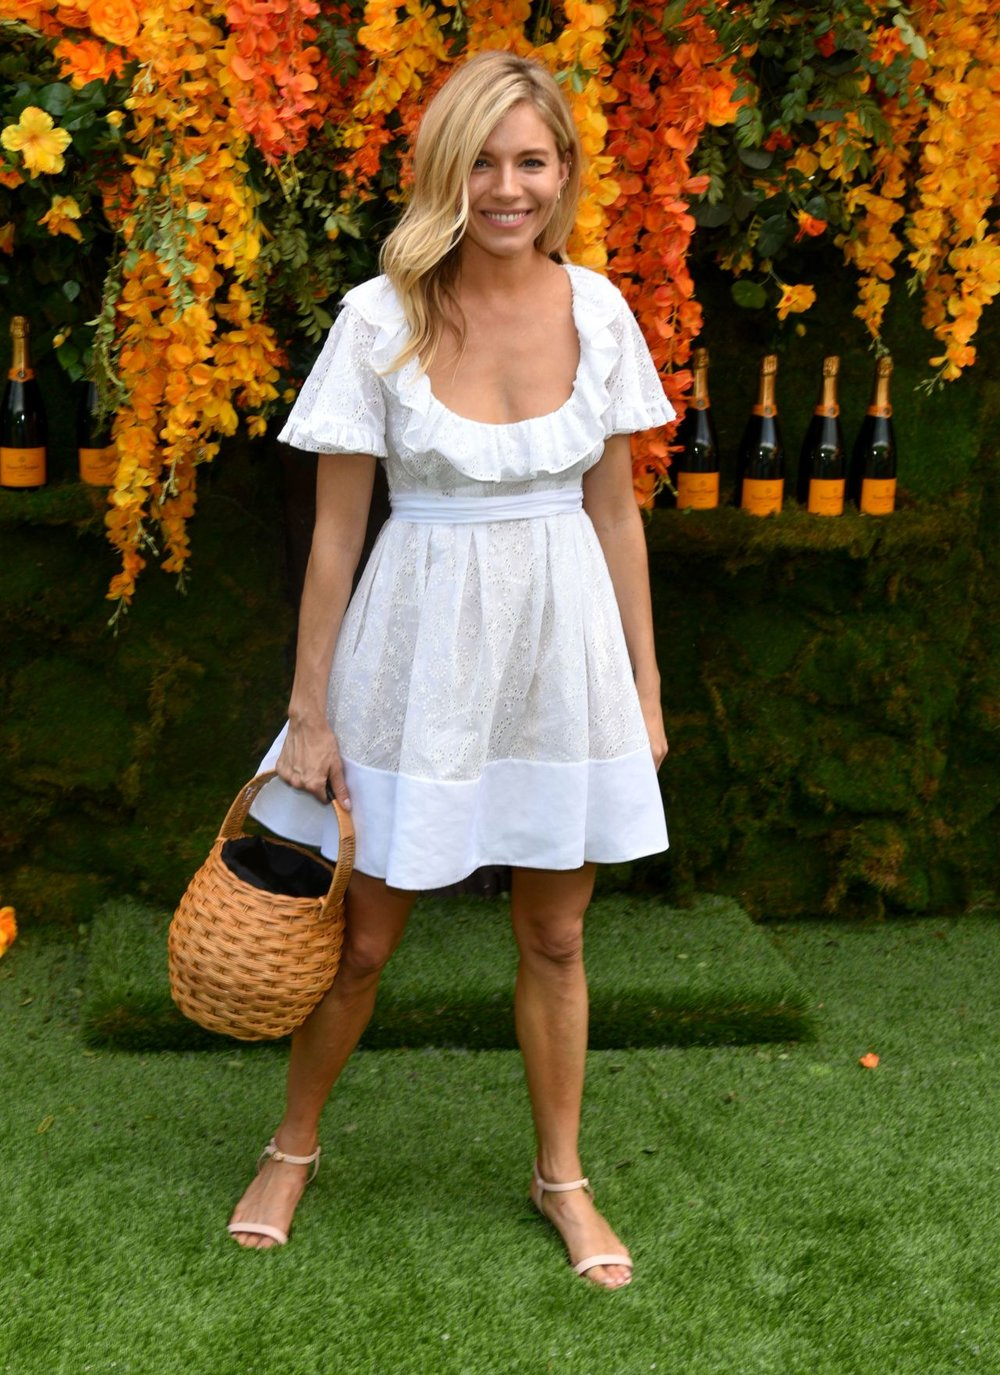 sienna-miller-2018-veuve-clicquot-polo-classic-in-new-jersey-8.jpg